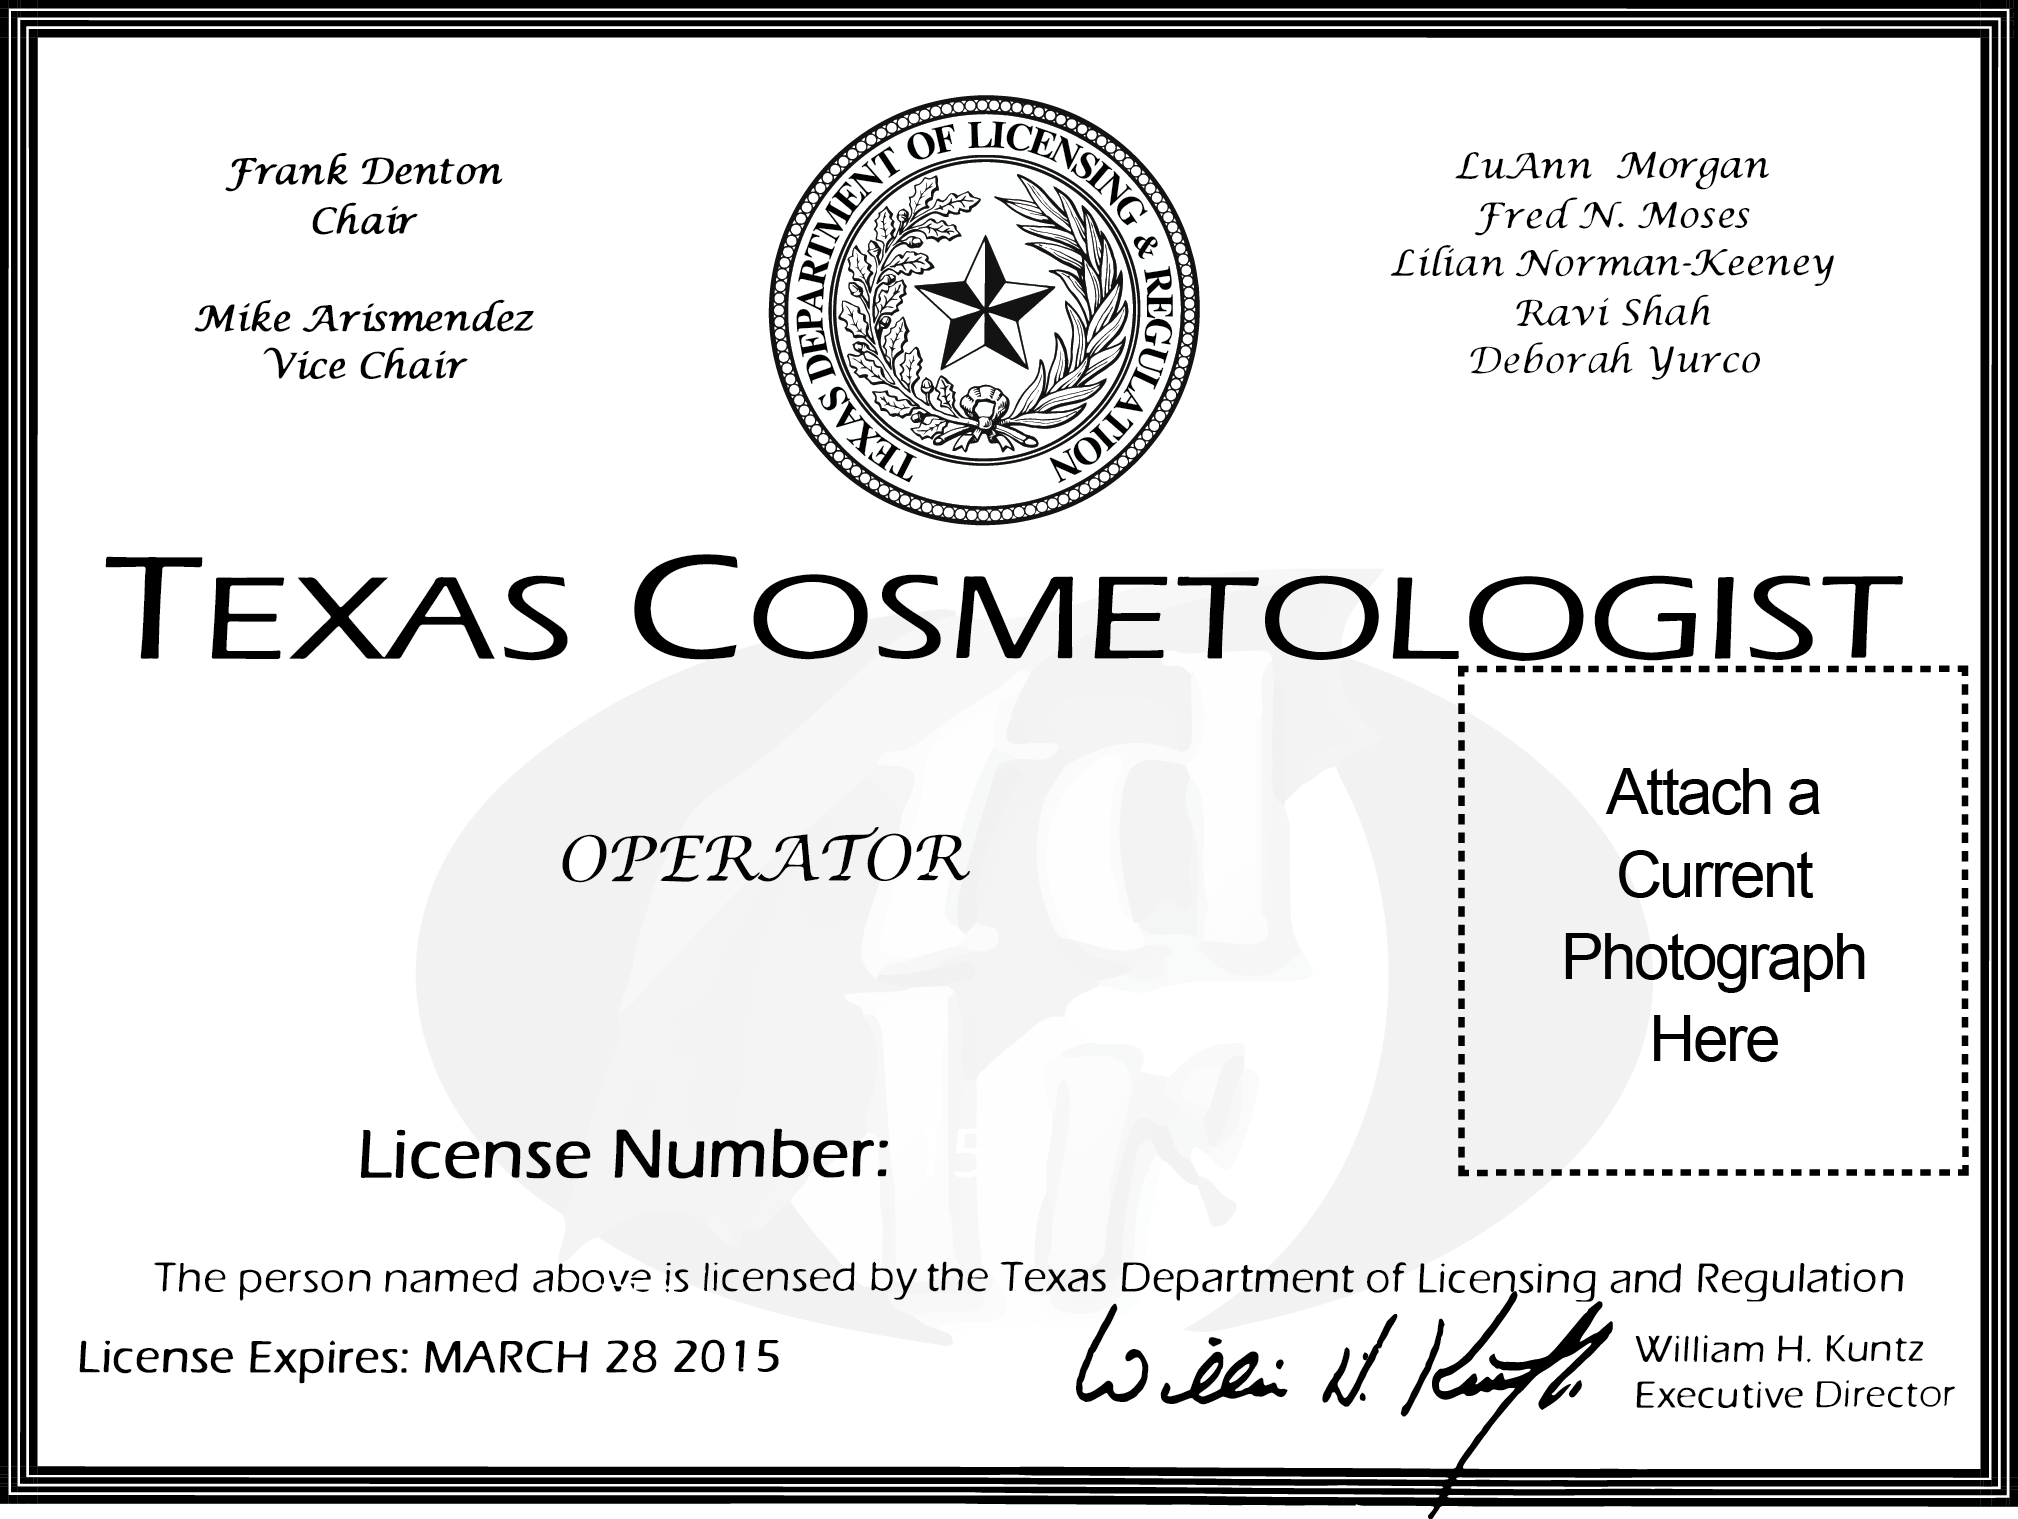 Texas Cosmetologist License by SoulComplex on DeviantArt